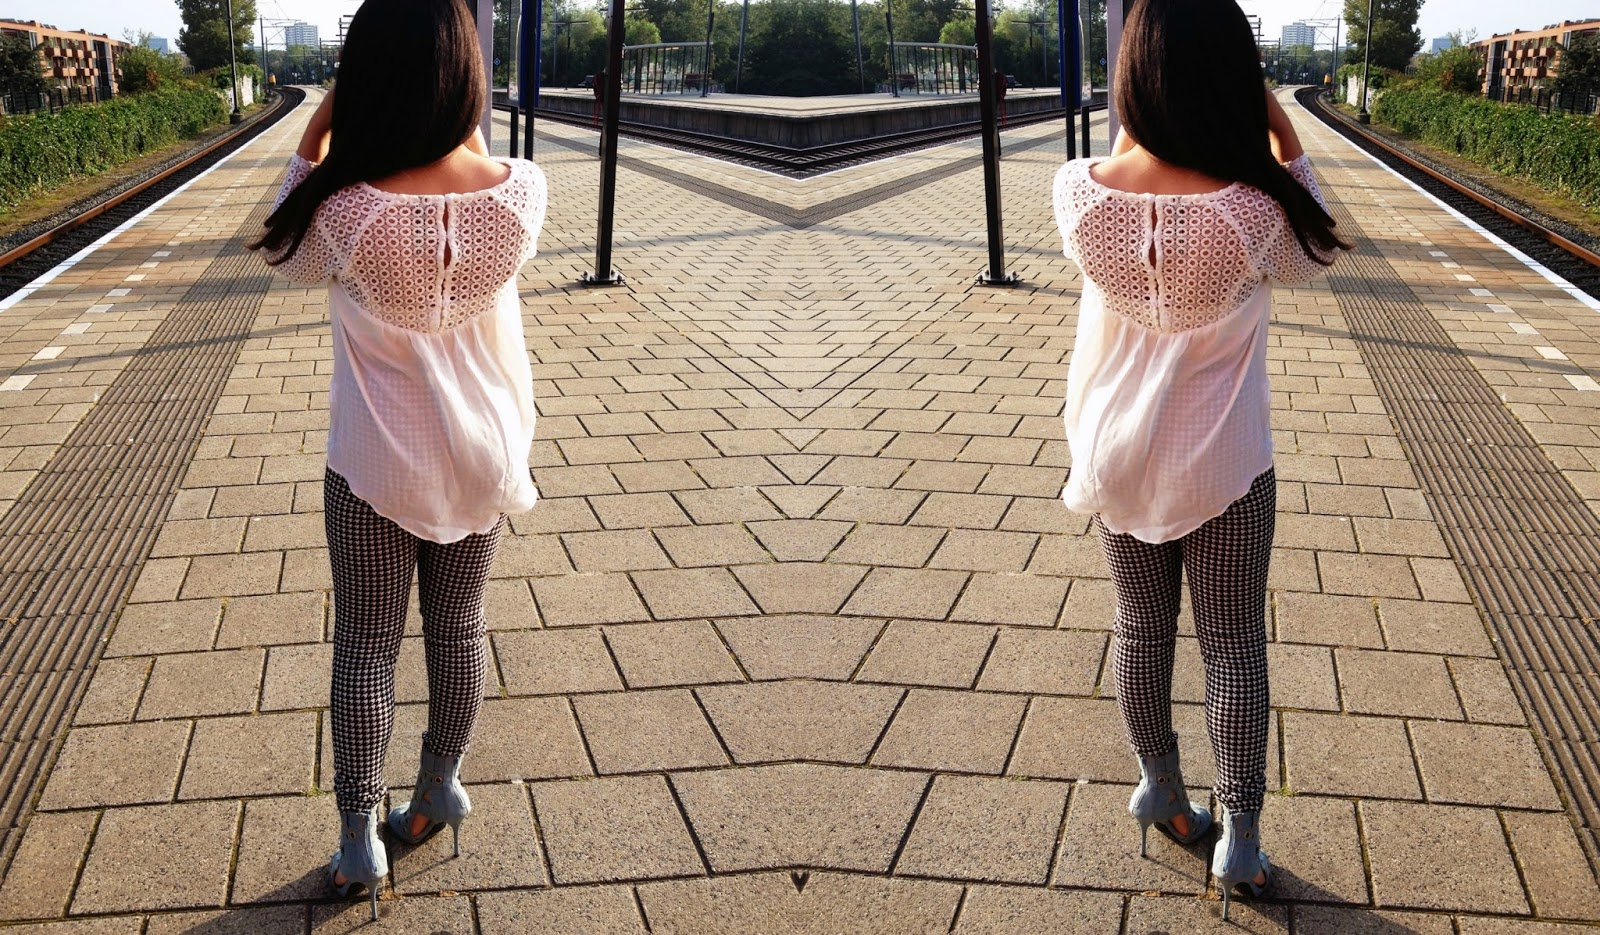 Twinkeltje.nl white button blouse review